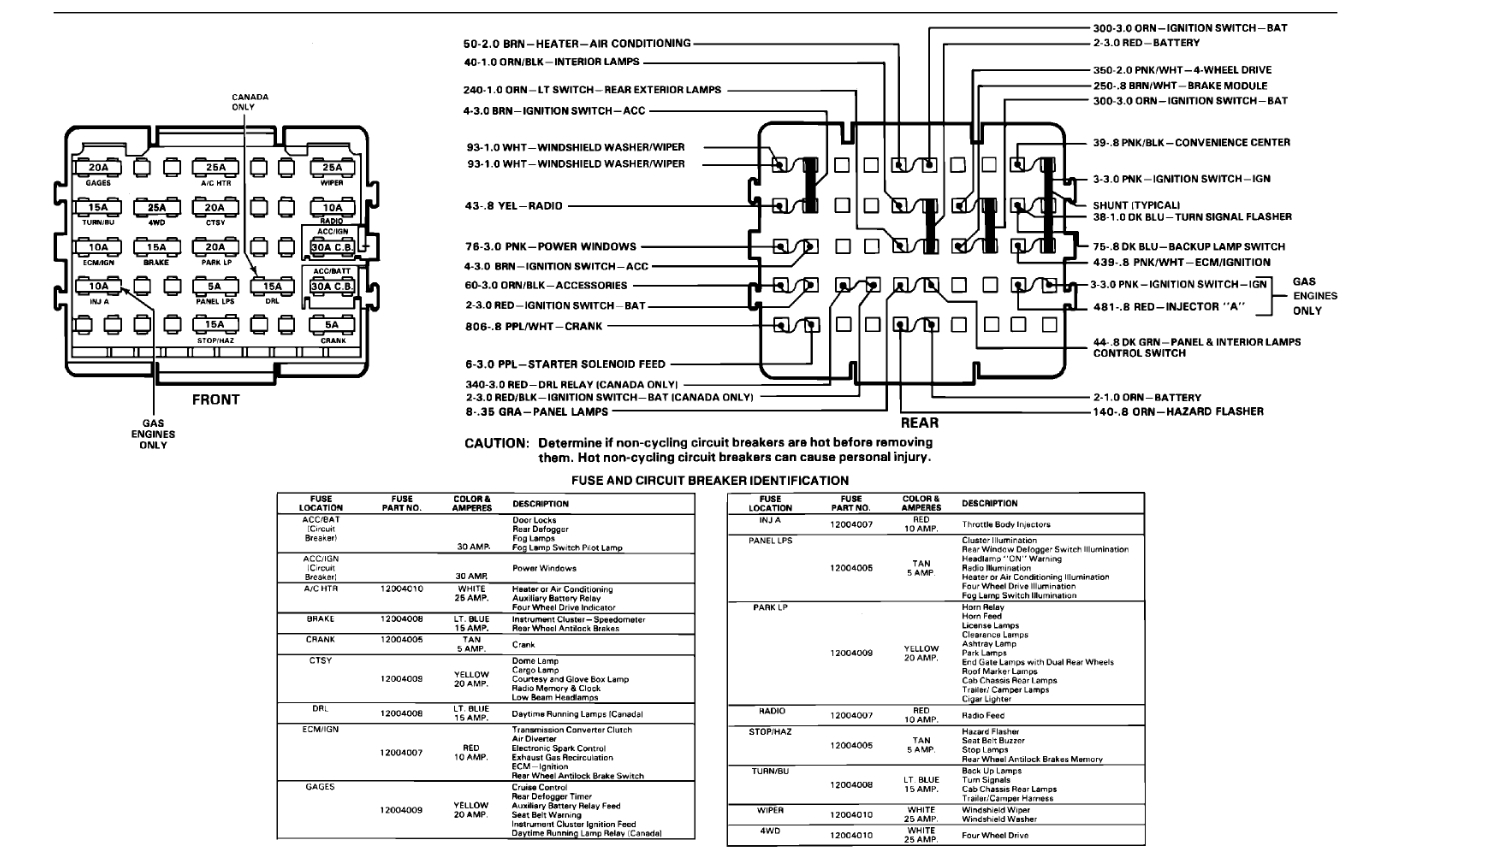 [DIAGRAM] Wiring Diagrams 2003 Chevy 1500hd FULL Version